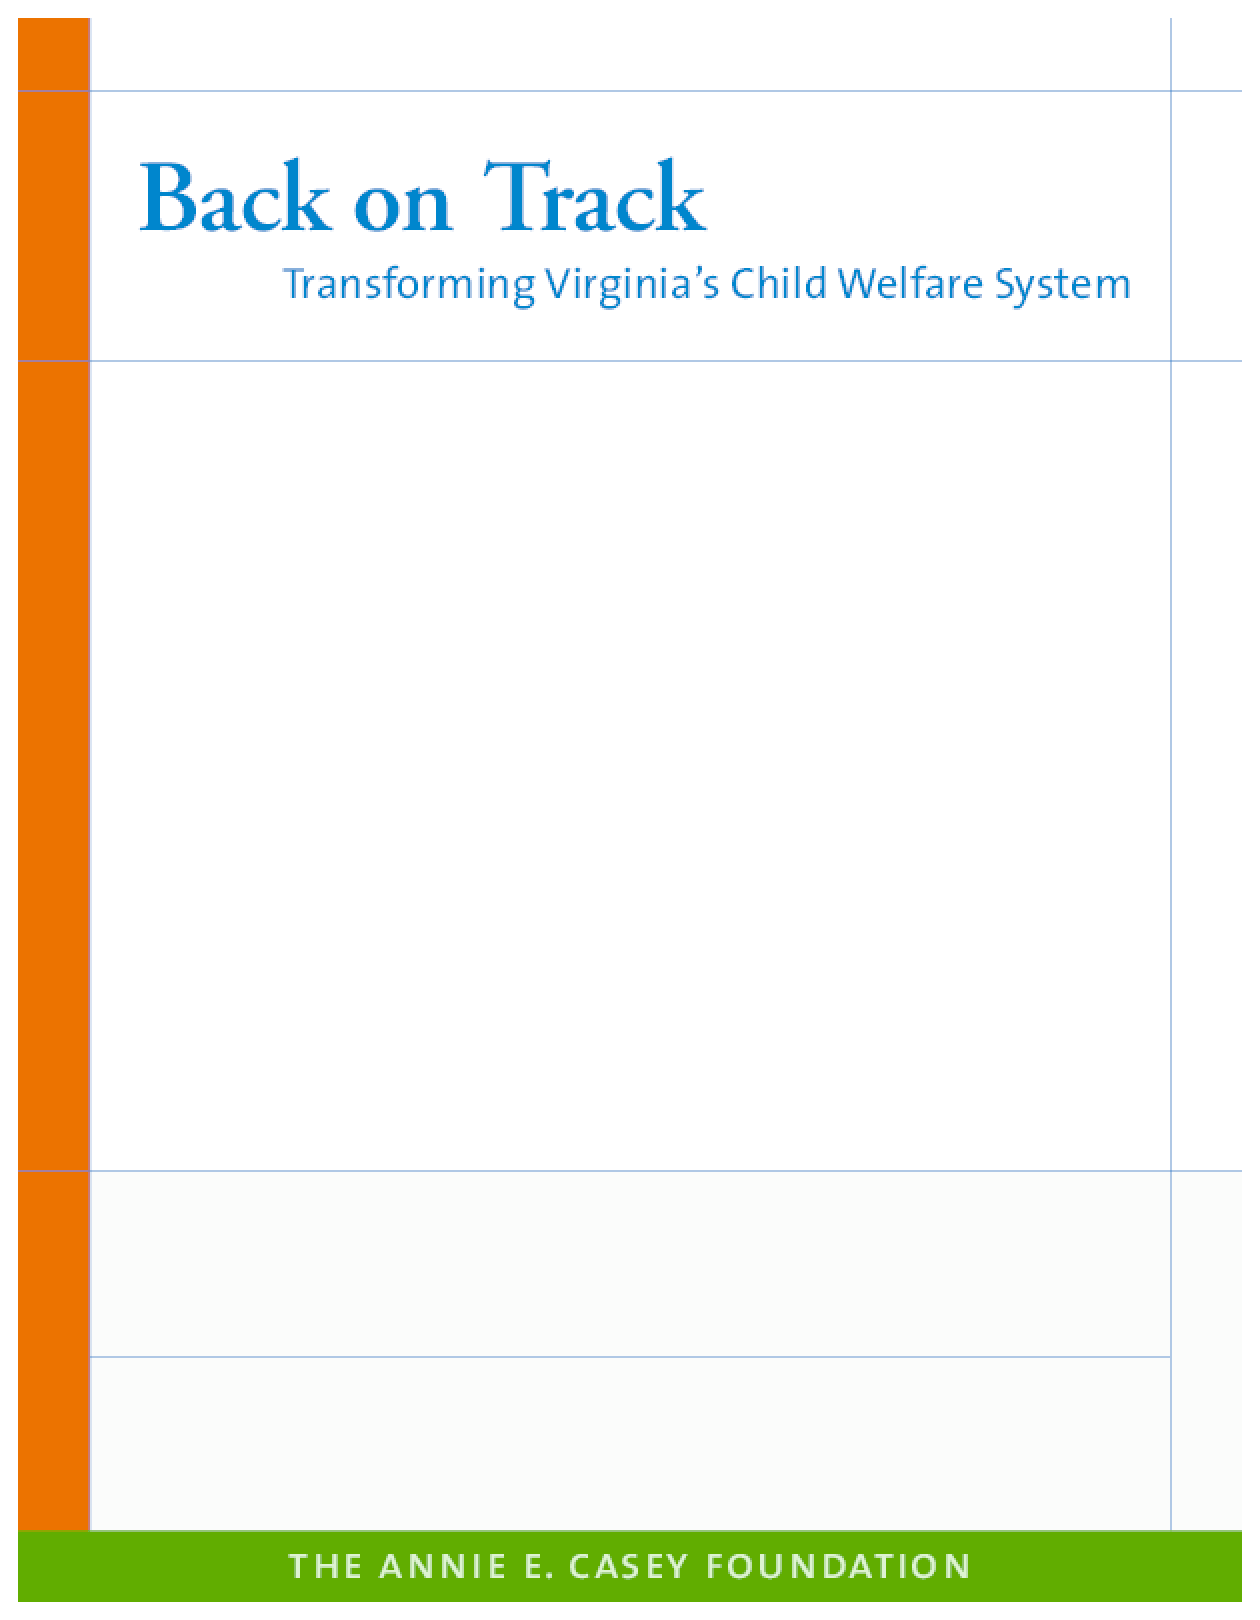 Back on Track: Transforming Virginia's Child Welfare System